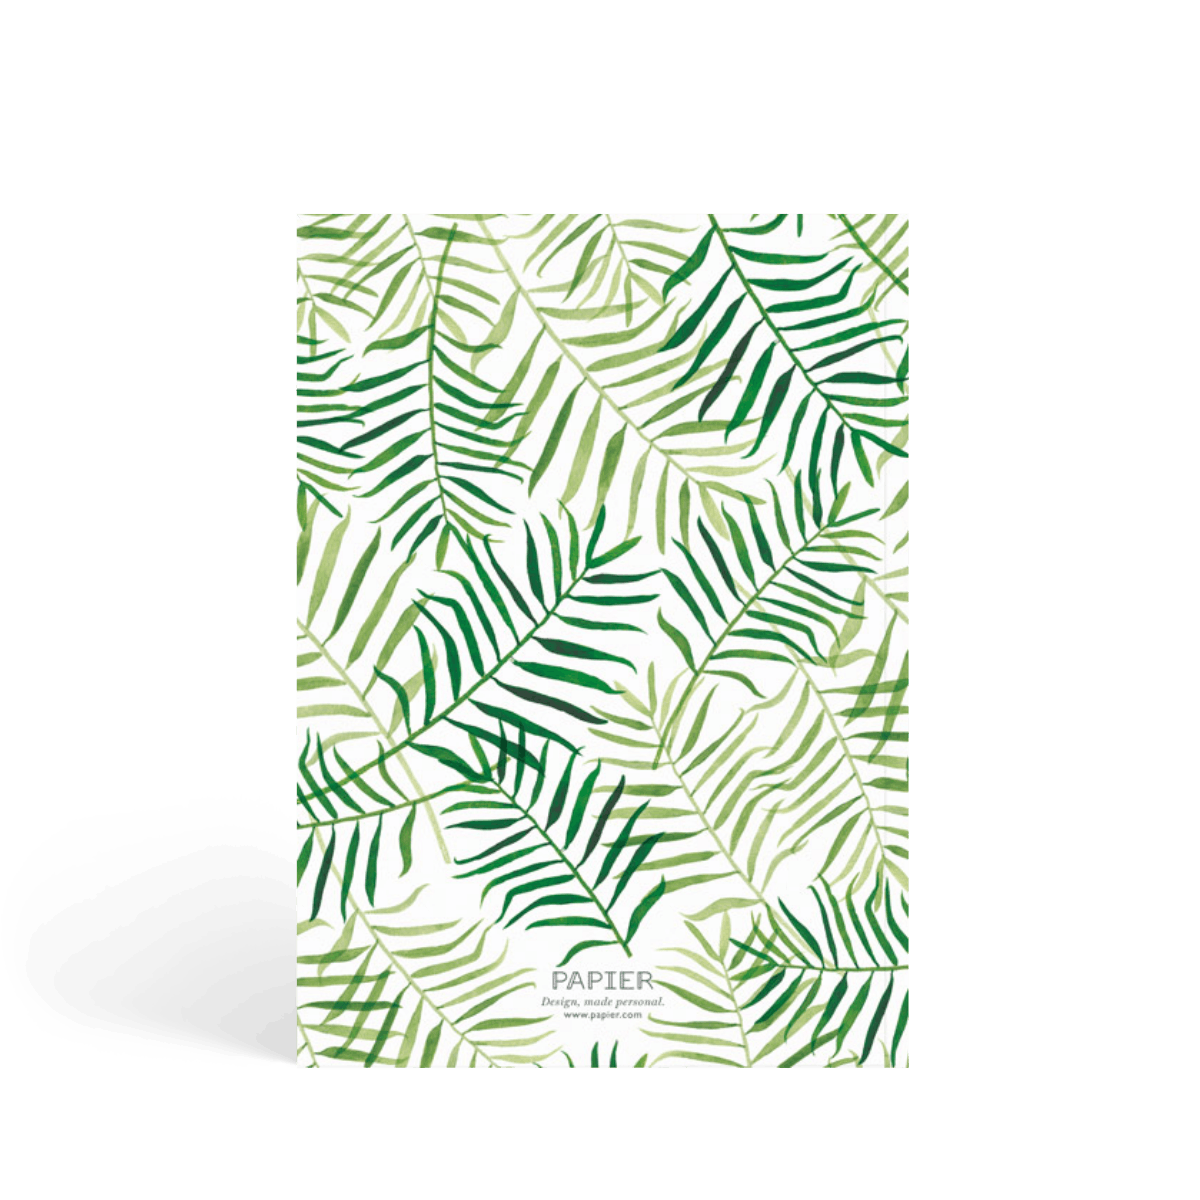 Https%3a%2f%2fwww.papier.com%2fproduct image%2f55154%2f5%2fpalm leaves 13252 back 1542299197.png?ixlib=rb 1.1